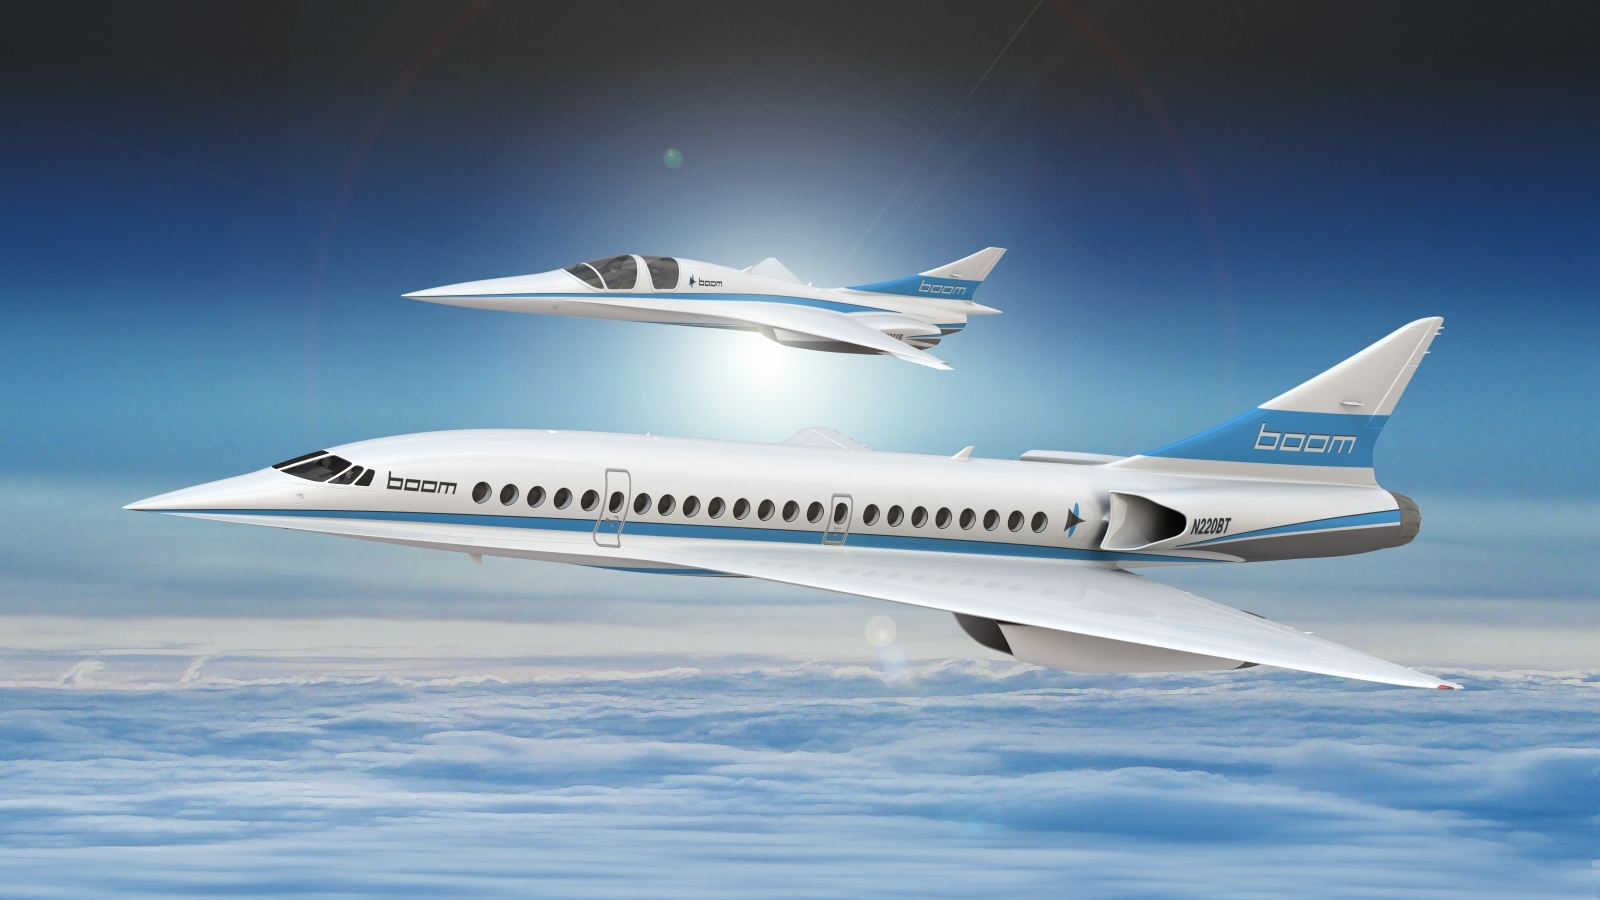 Boom's supersonic jets get $10 million boost from Japan Airlines